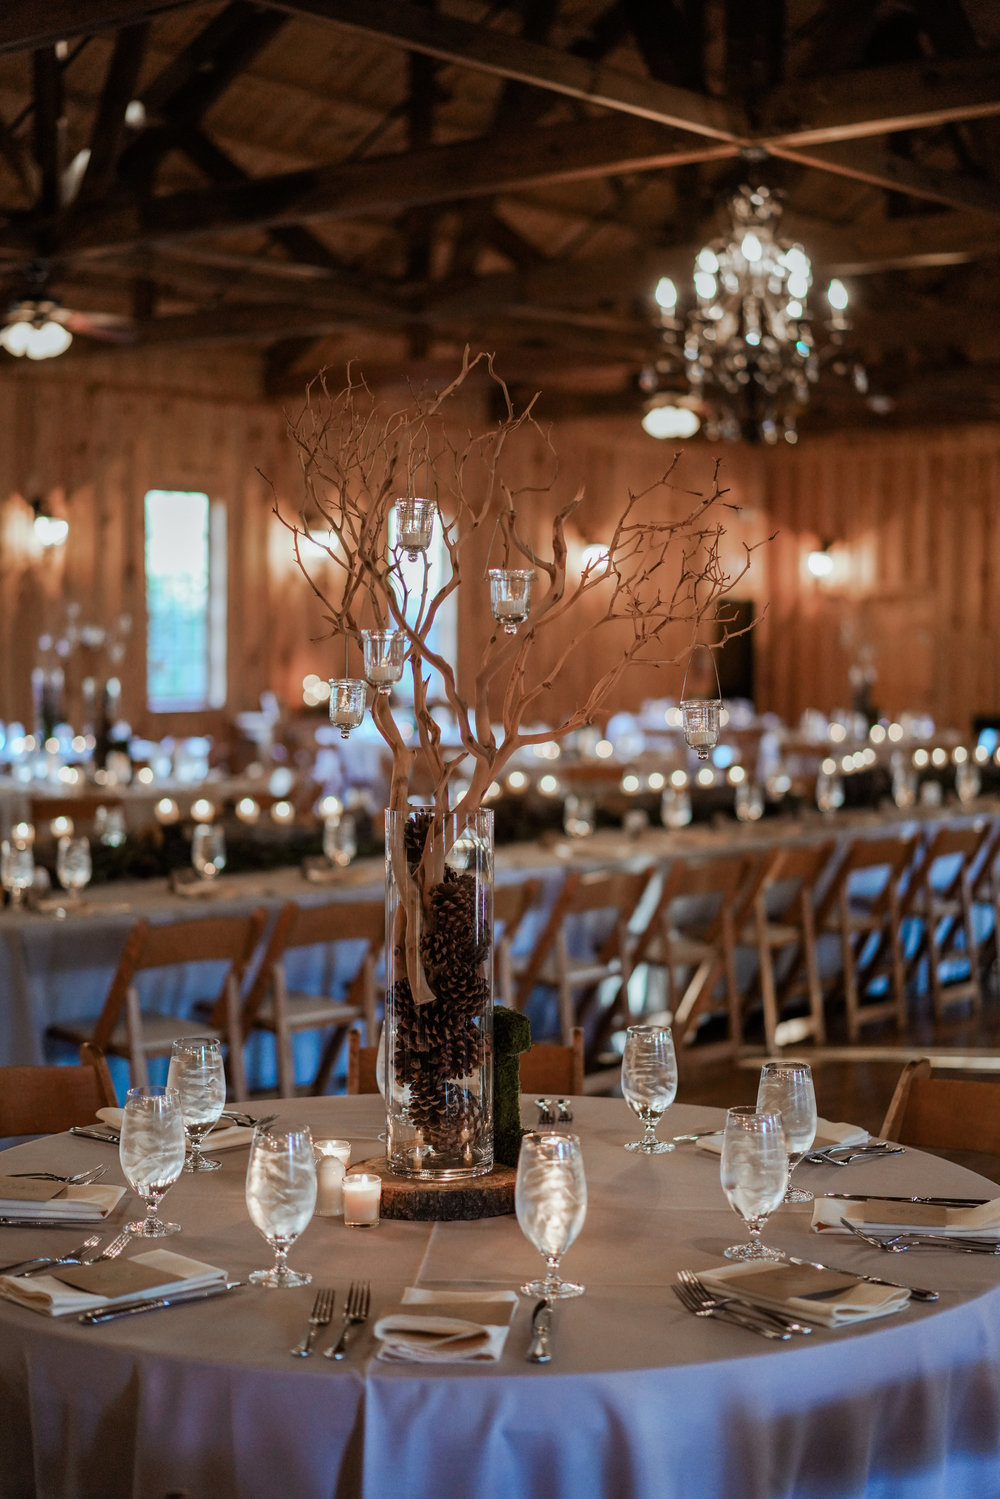 The Springs Event Venues Lake Conroe in Montgomery Texas Wedding venue. Austin and Hoston wedding photographer.